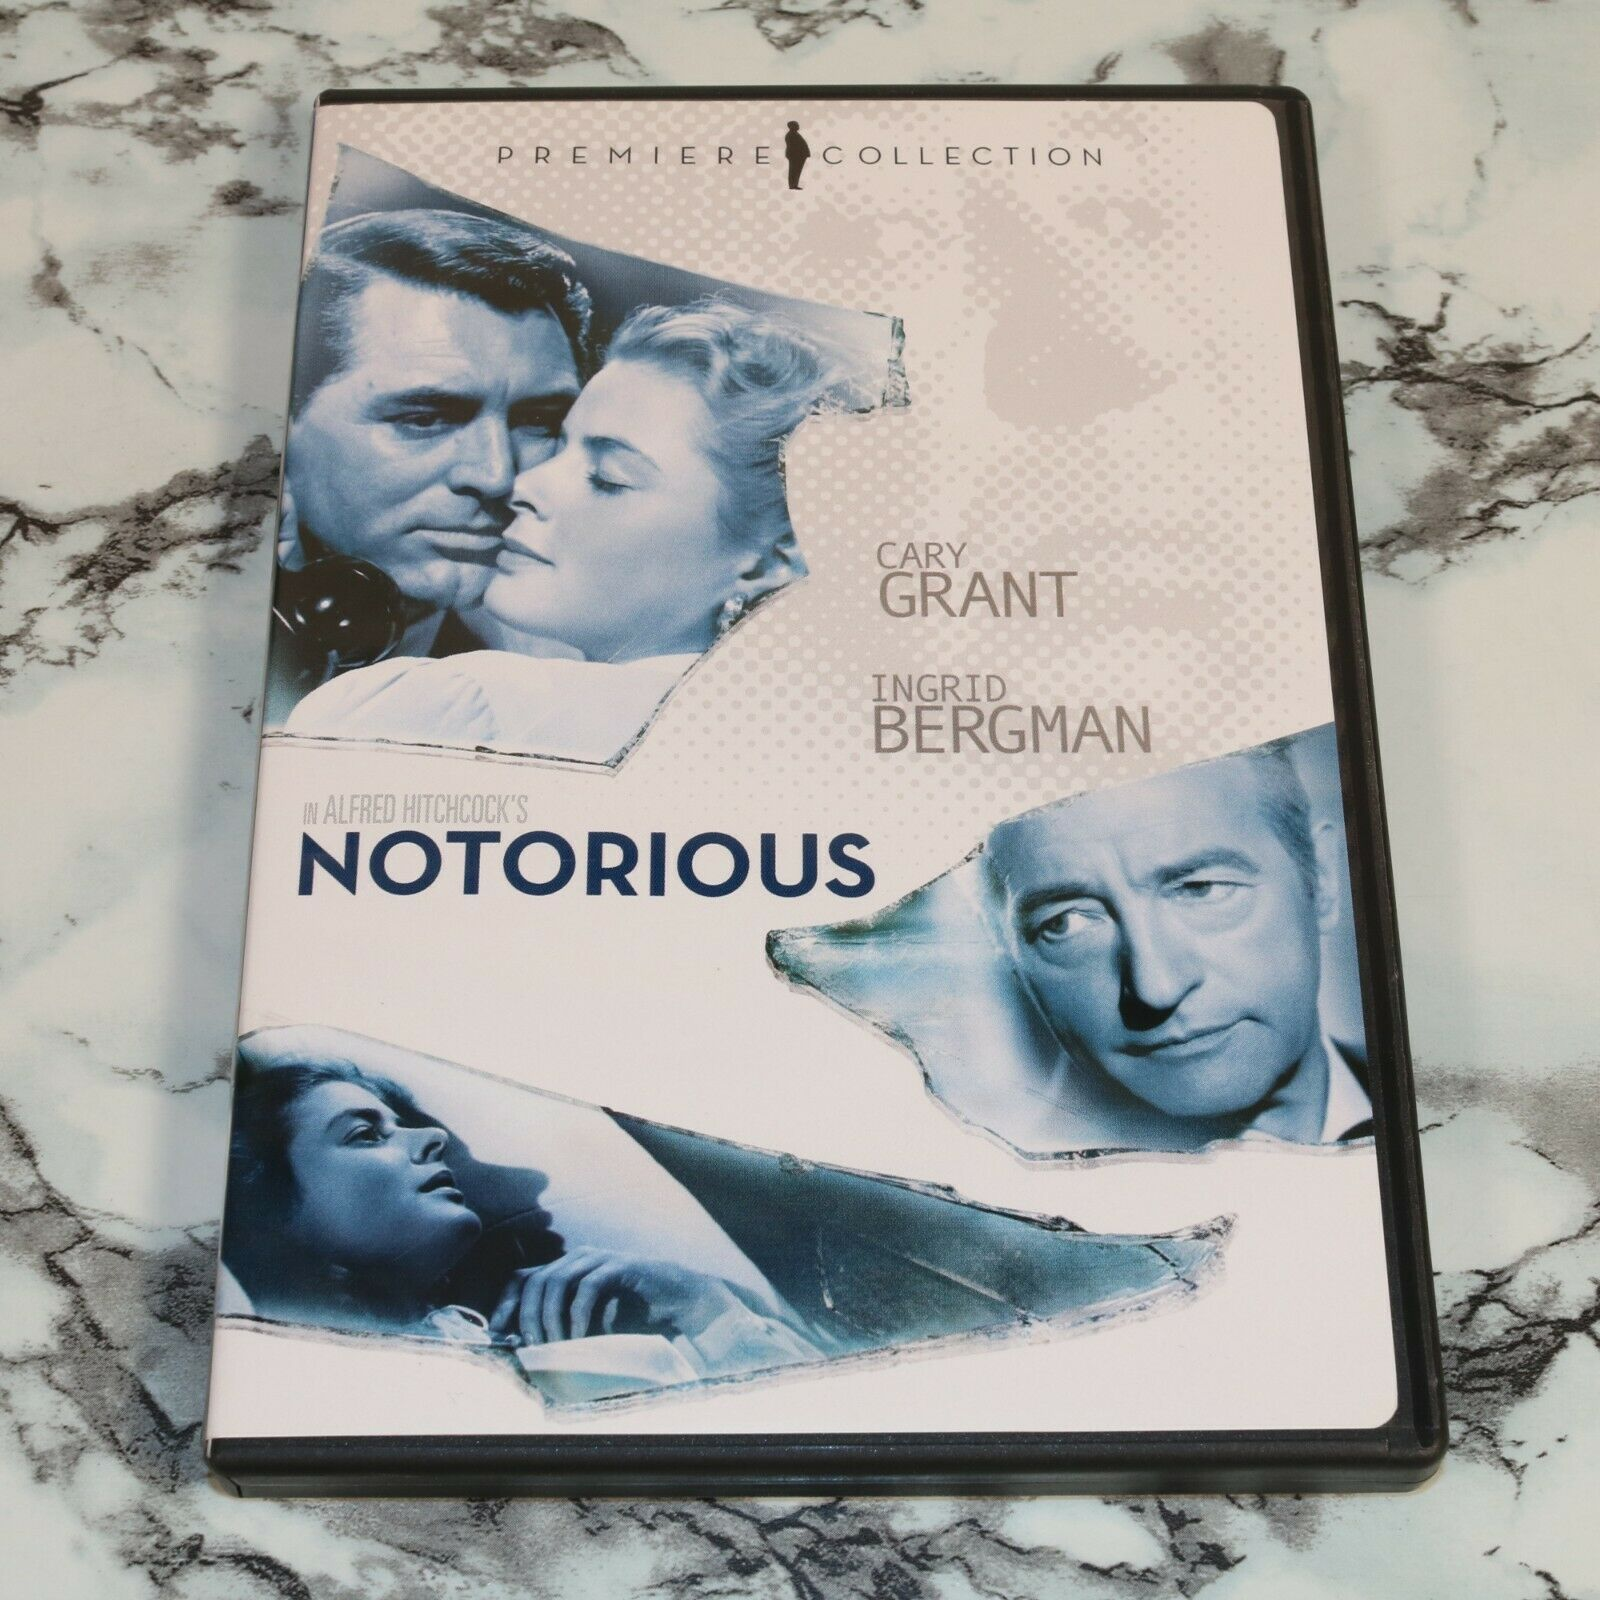 Alfred Hitchcock s Notorious - Premiere Collection DVD, 2008 -- Cary Grant - $11.93